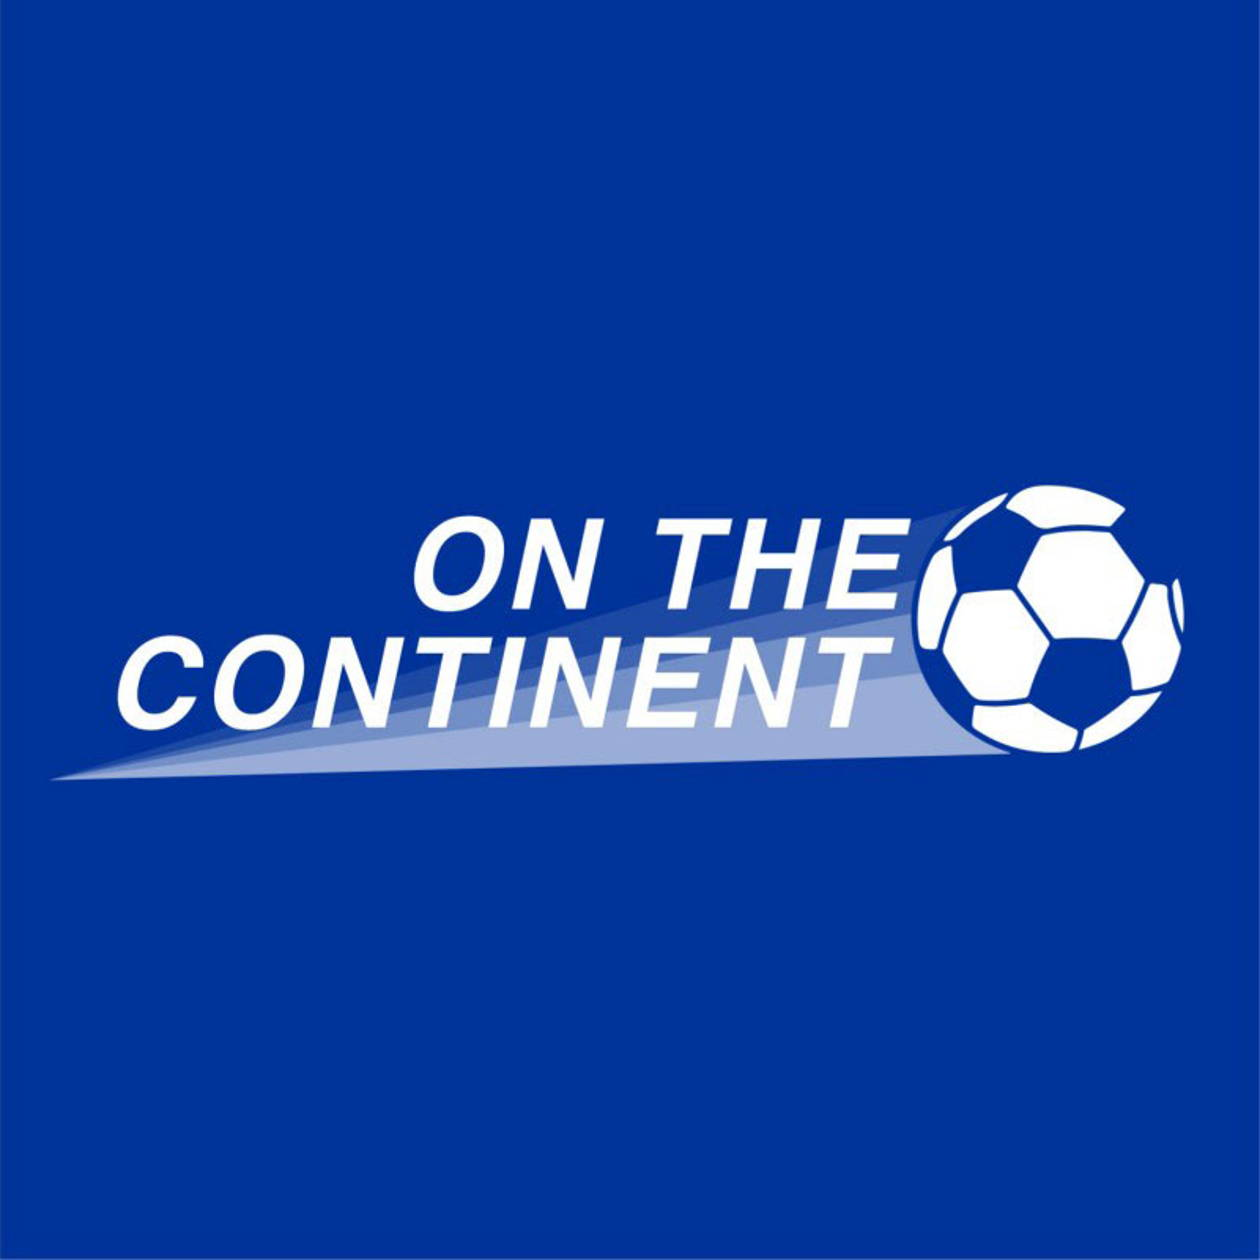 Artwork for the On The Continent podcast.